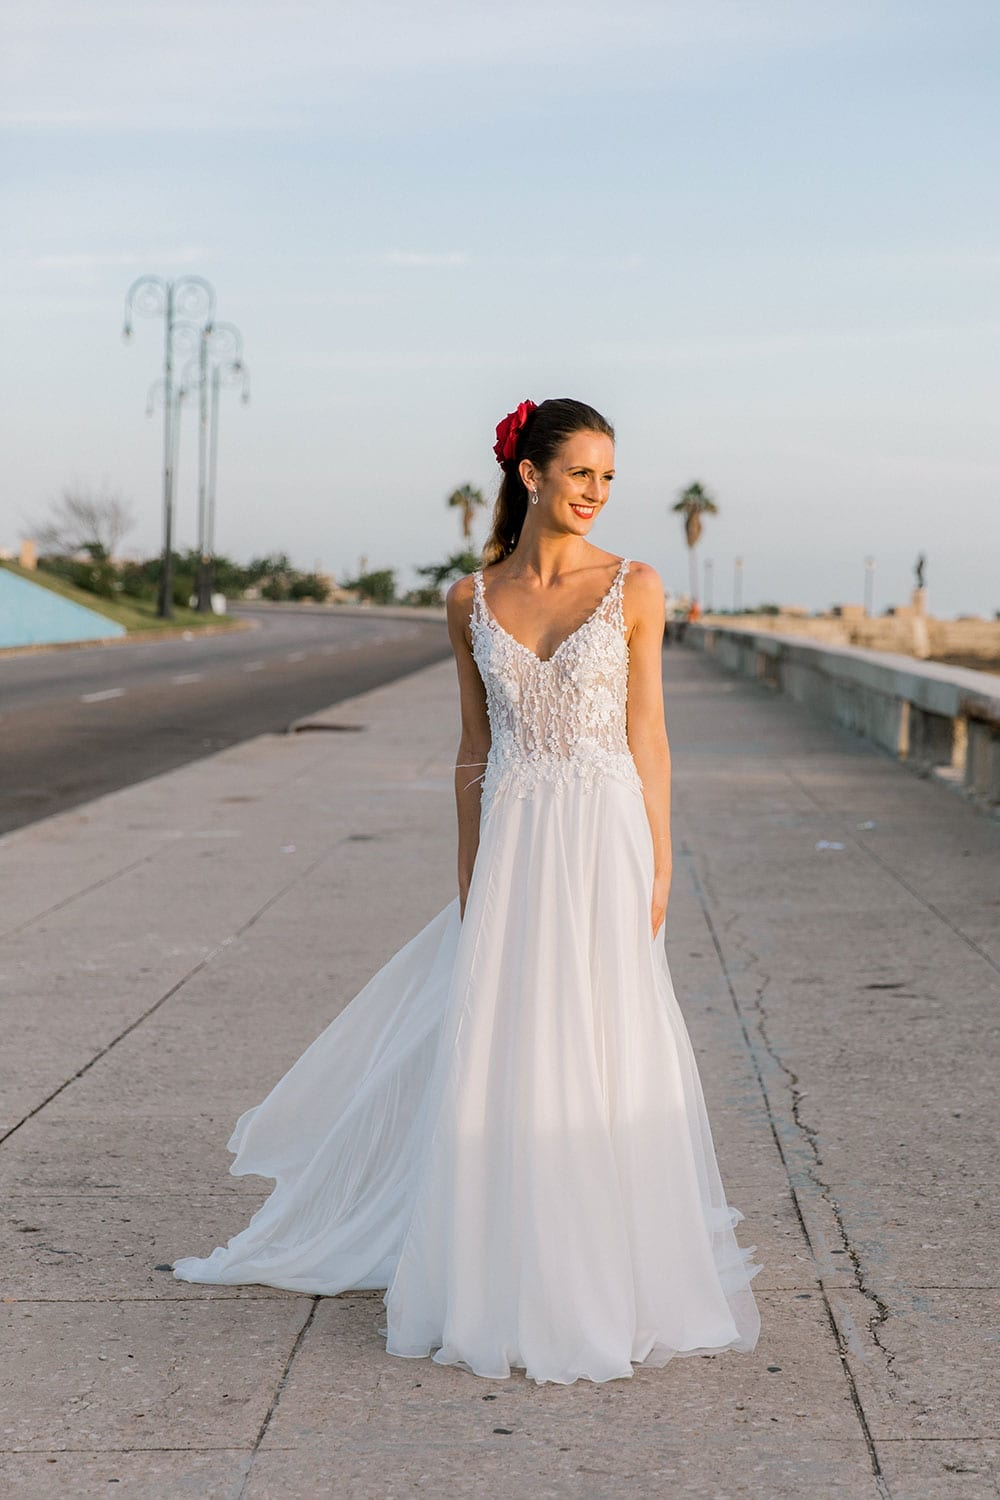 Model wearing Vinka Design Iris Wedding Dress, a Silk Chiffon Wedding Gown posed on a paved walkway in Havana looking to the side